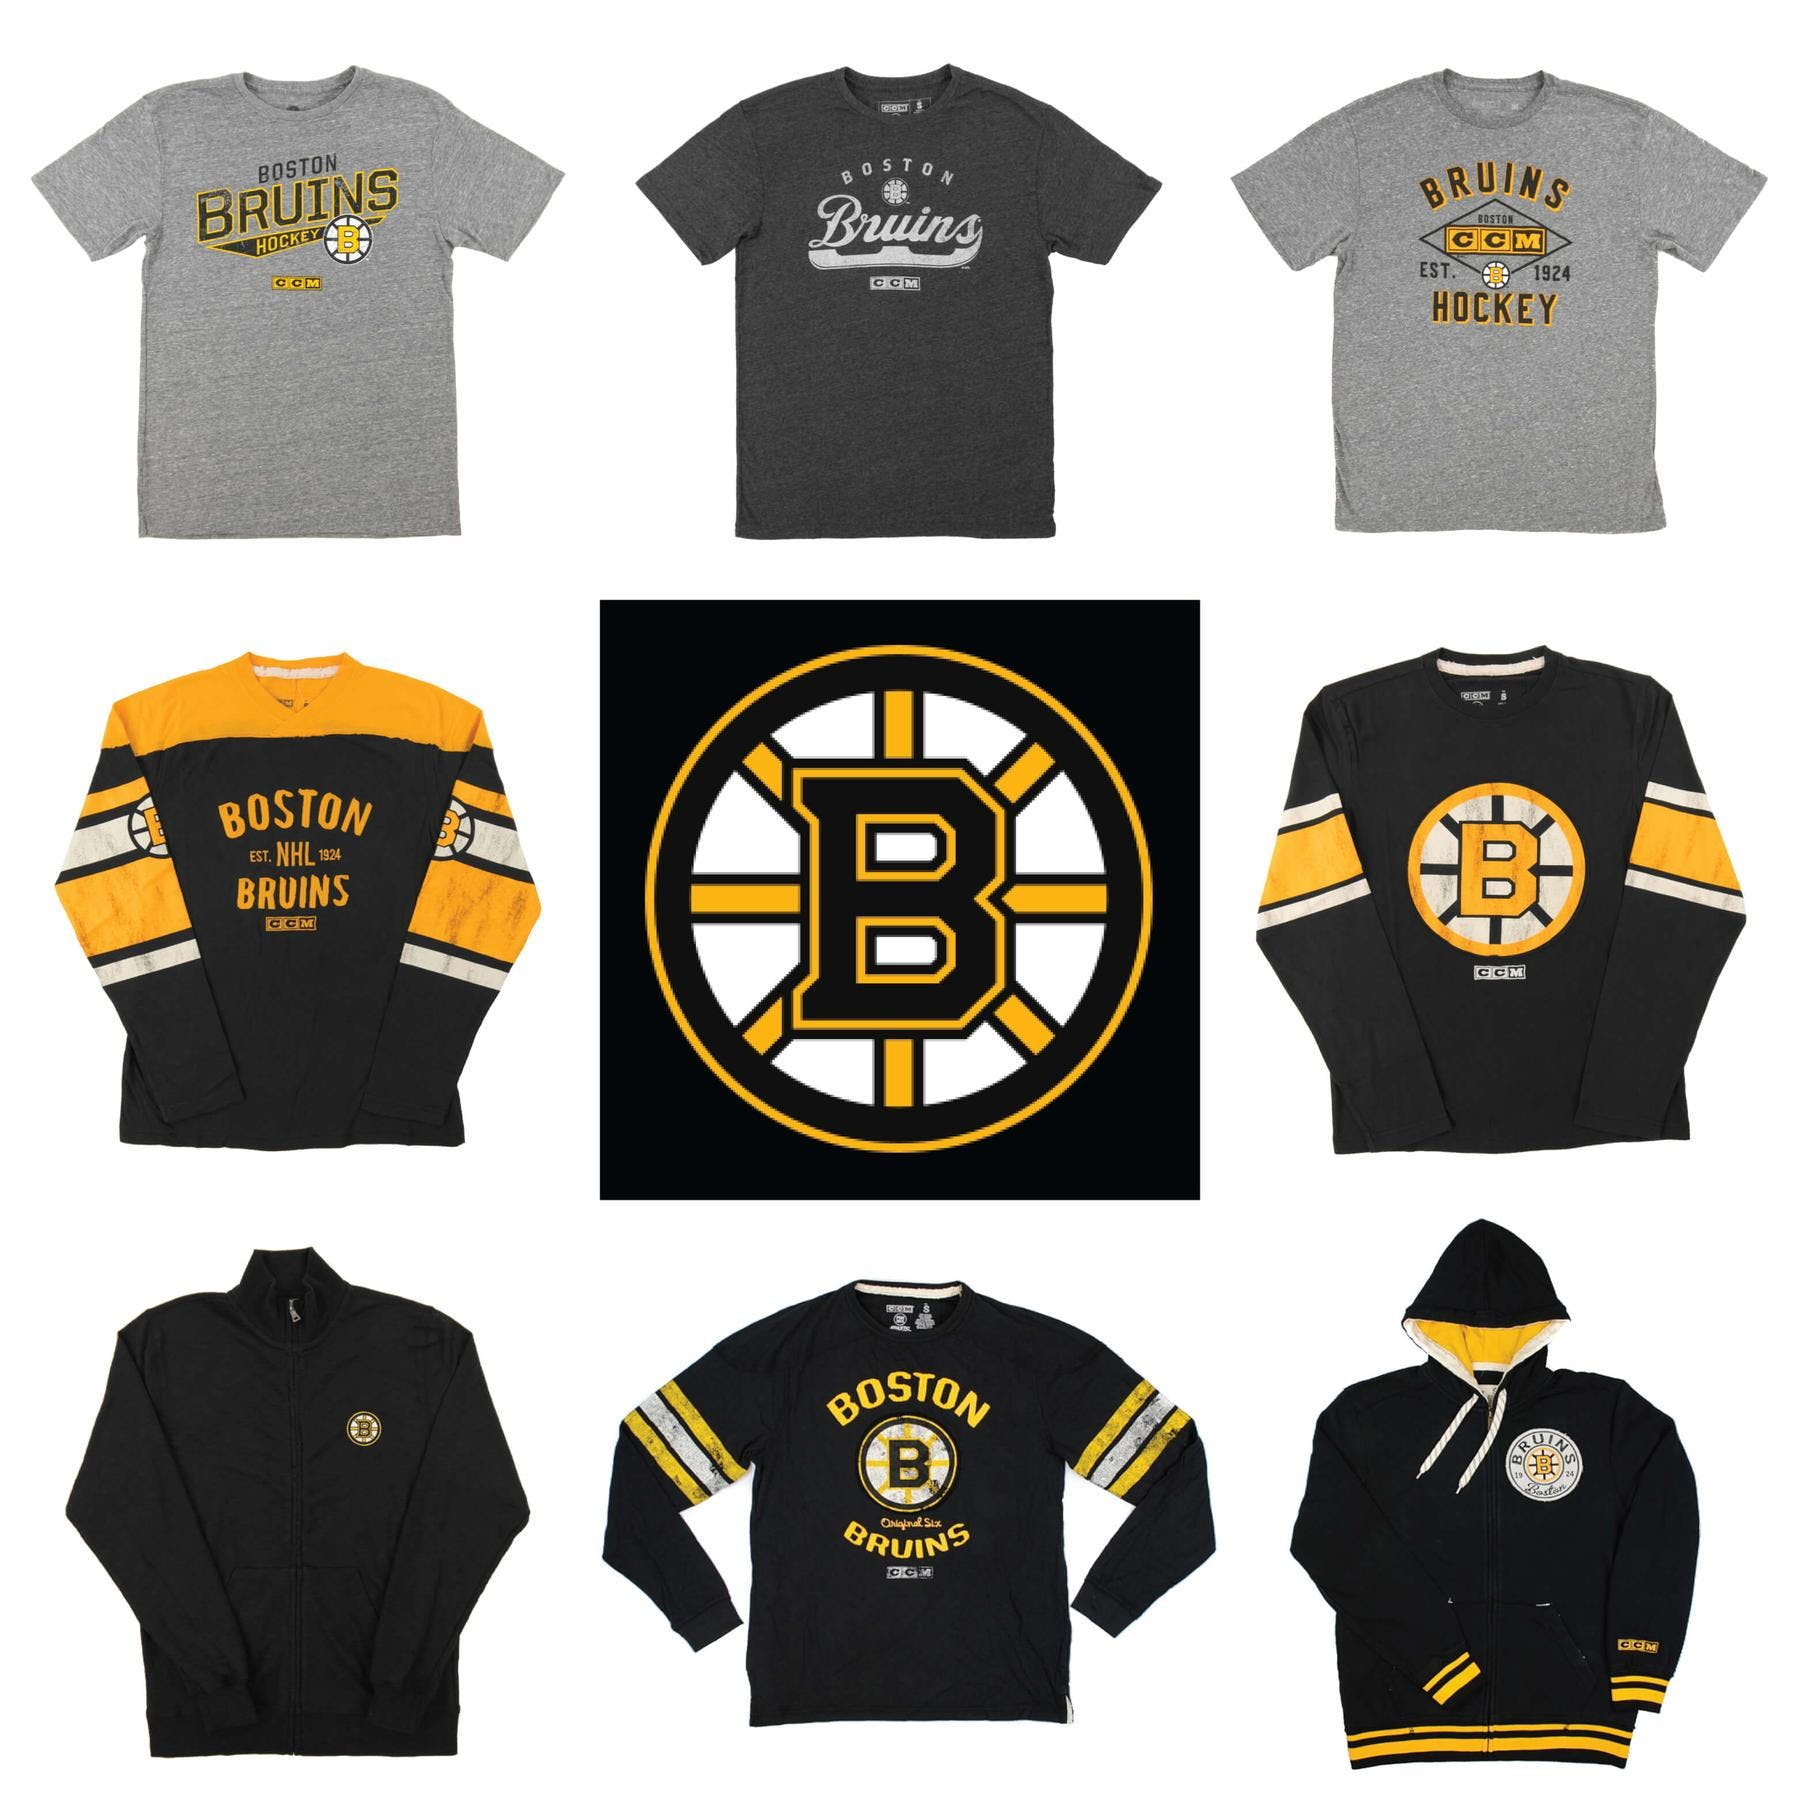 cac9b1564c9dbc Boston Bruins Officially Licensed NHL Apparel Liquidation - 4,080+ Items,  $165,000+ SRP! | DA Card World